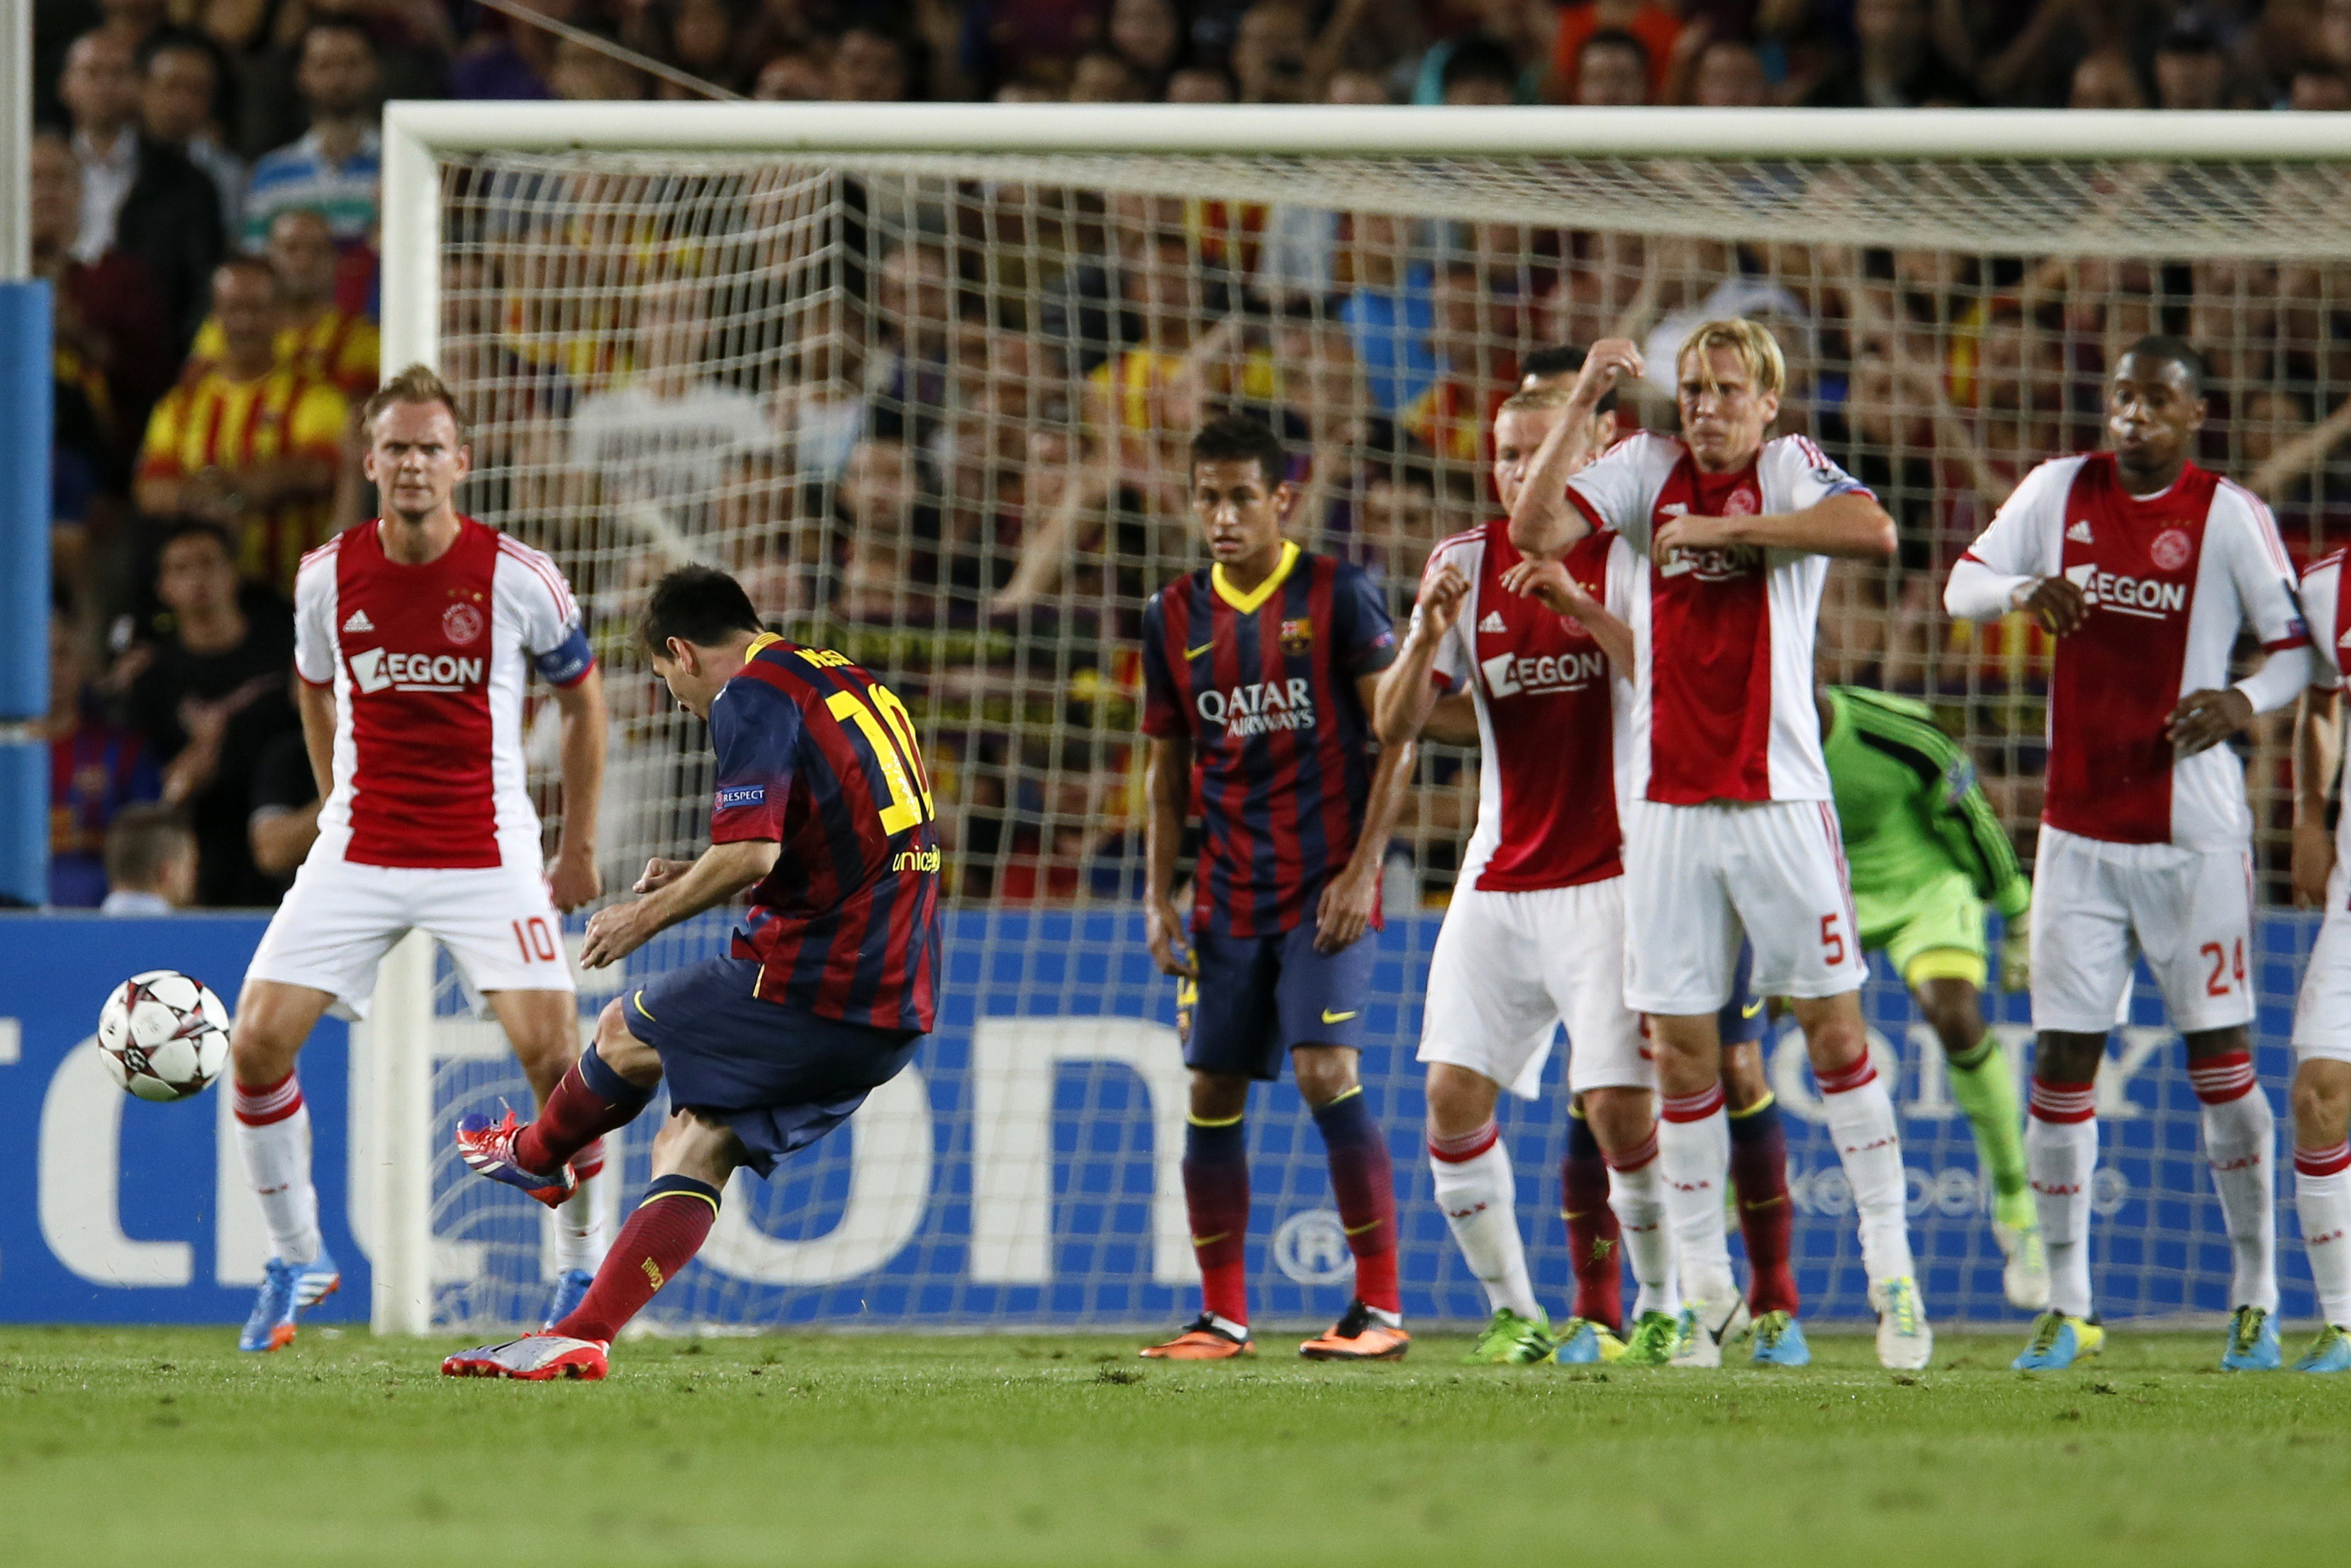 Barcelona's Lionel Messi (2nd L) scores a goal from a direct free kick against Ajax during their Champions League soccer match at Camp Nou stadium in Barcelona September 18, 2013 (Reuters)